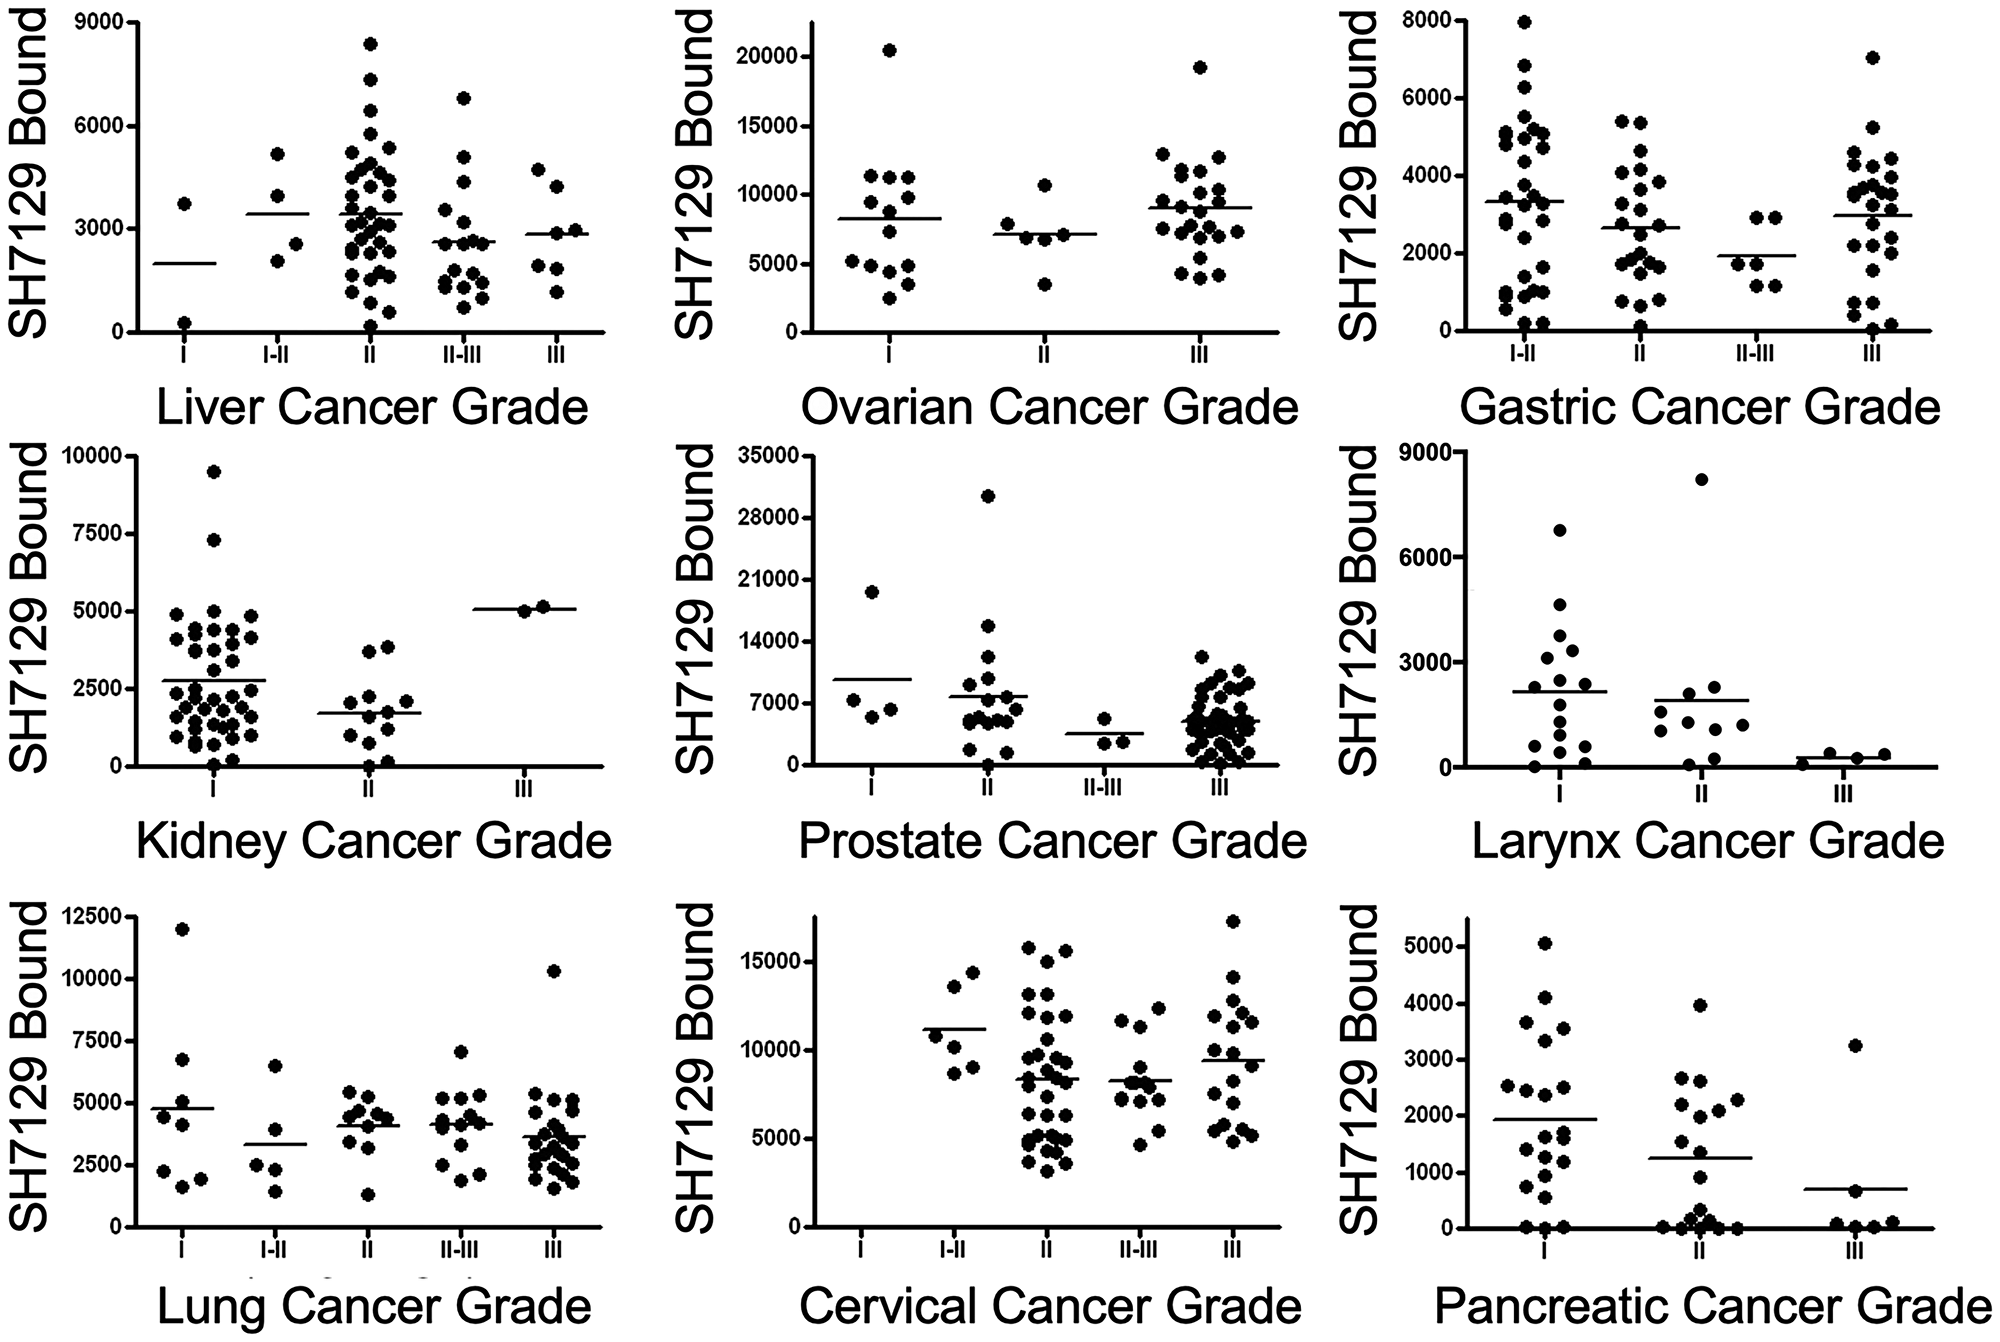 Comparison of SH7129 binding to nine cancers by grade.